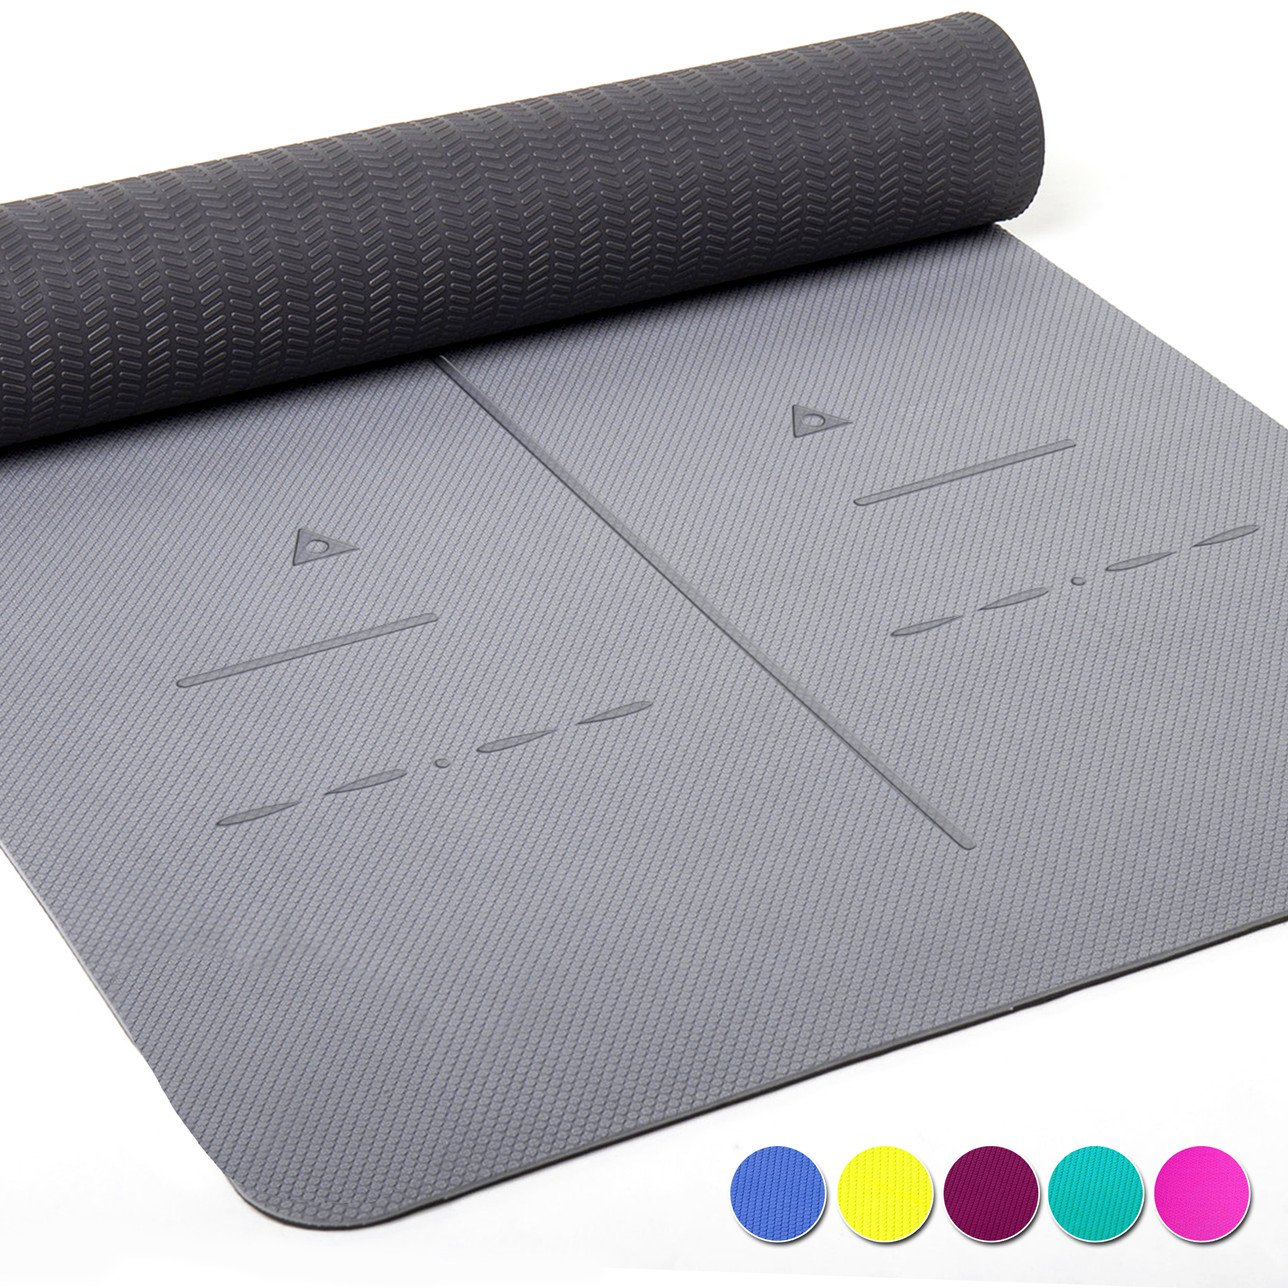 Heathyoga Eco Friendly Non Slip Yoga Mat, Body Alignment System, SGS Certified TPE Material - Textured Non Slip Surface and Optimal Cushioning,72''x 26'' Thickness 1/4'' (Ashy-Dark) by Heathyoga